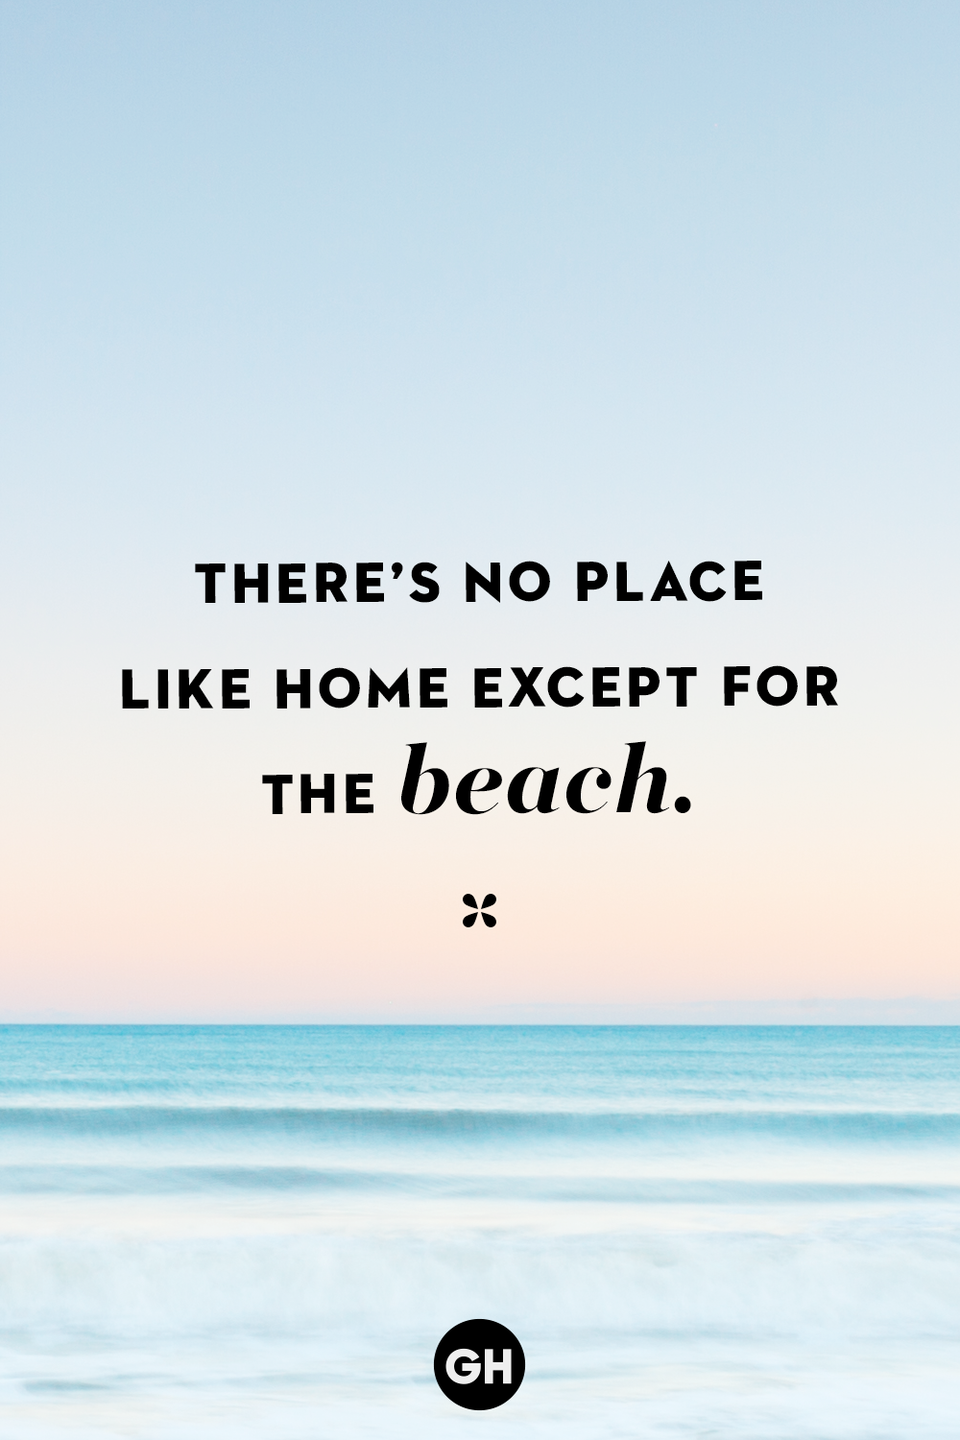 <p>There's no place like home except for the beach.</p>